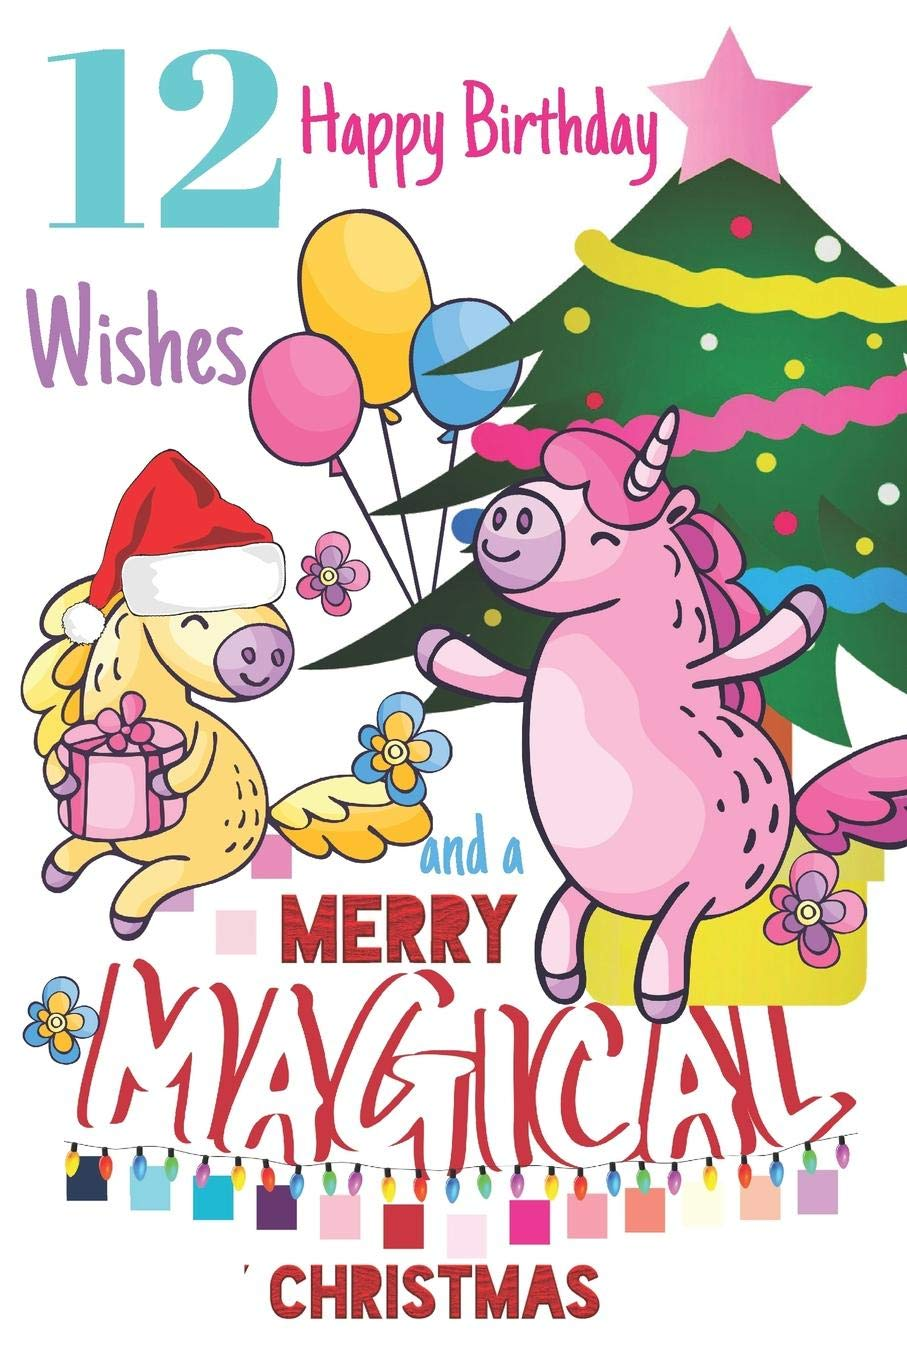 12 Happy Birthday Wishes And A Merry Magical Christmas.